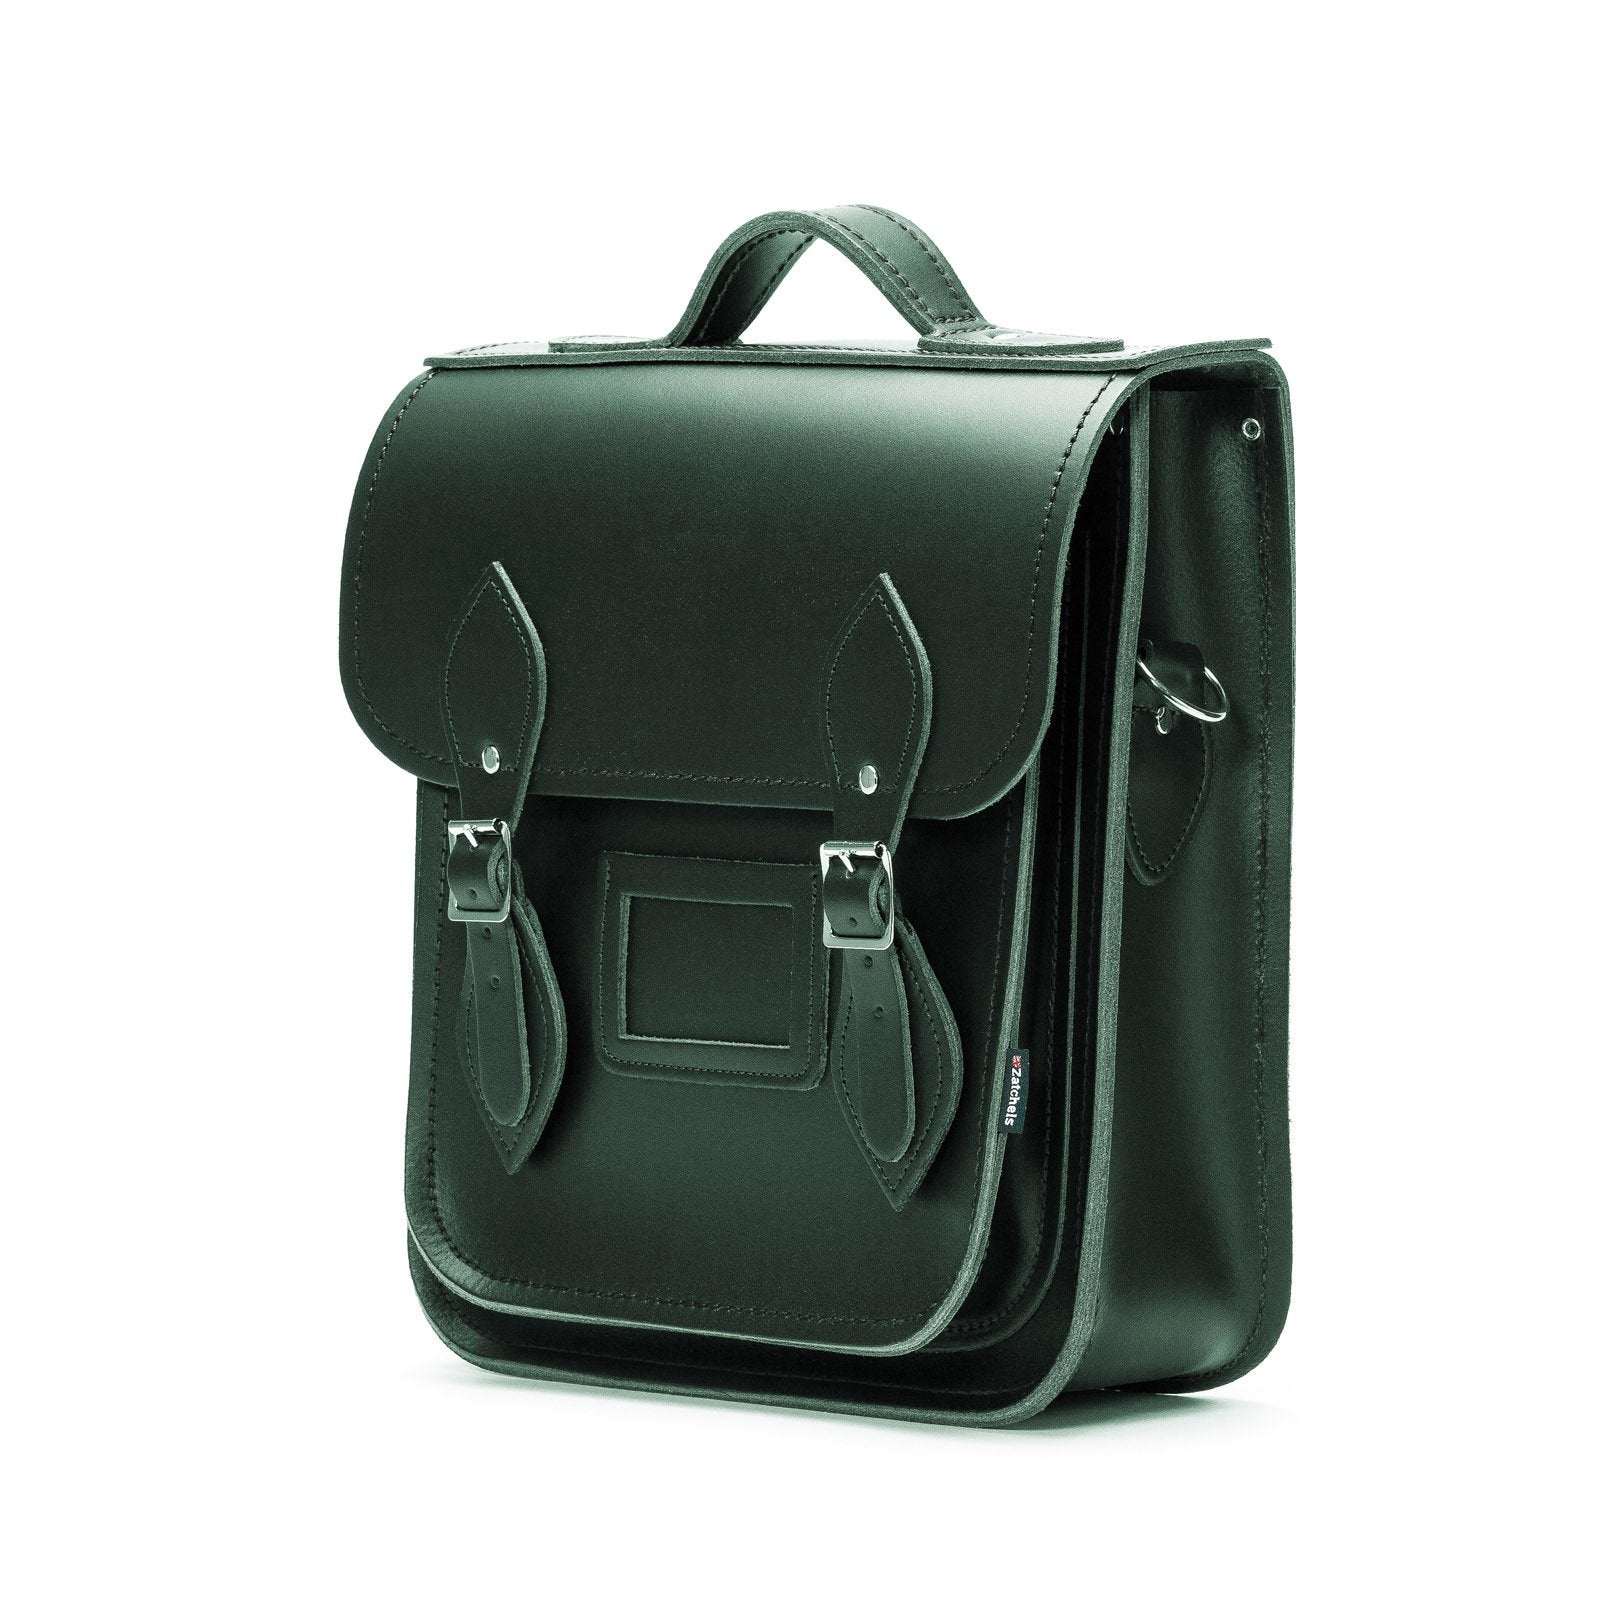 Handmade Leather City Backpack - Ivy Green